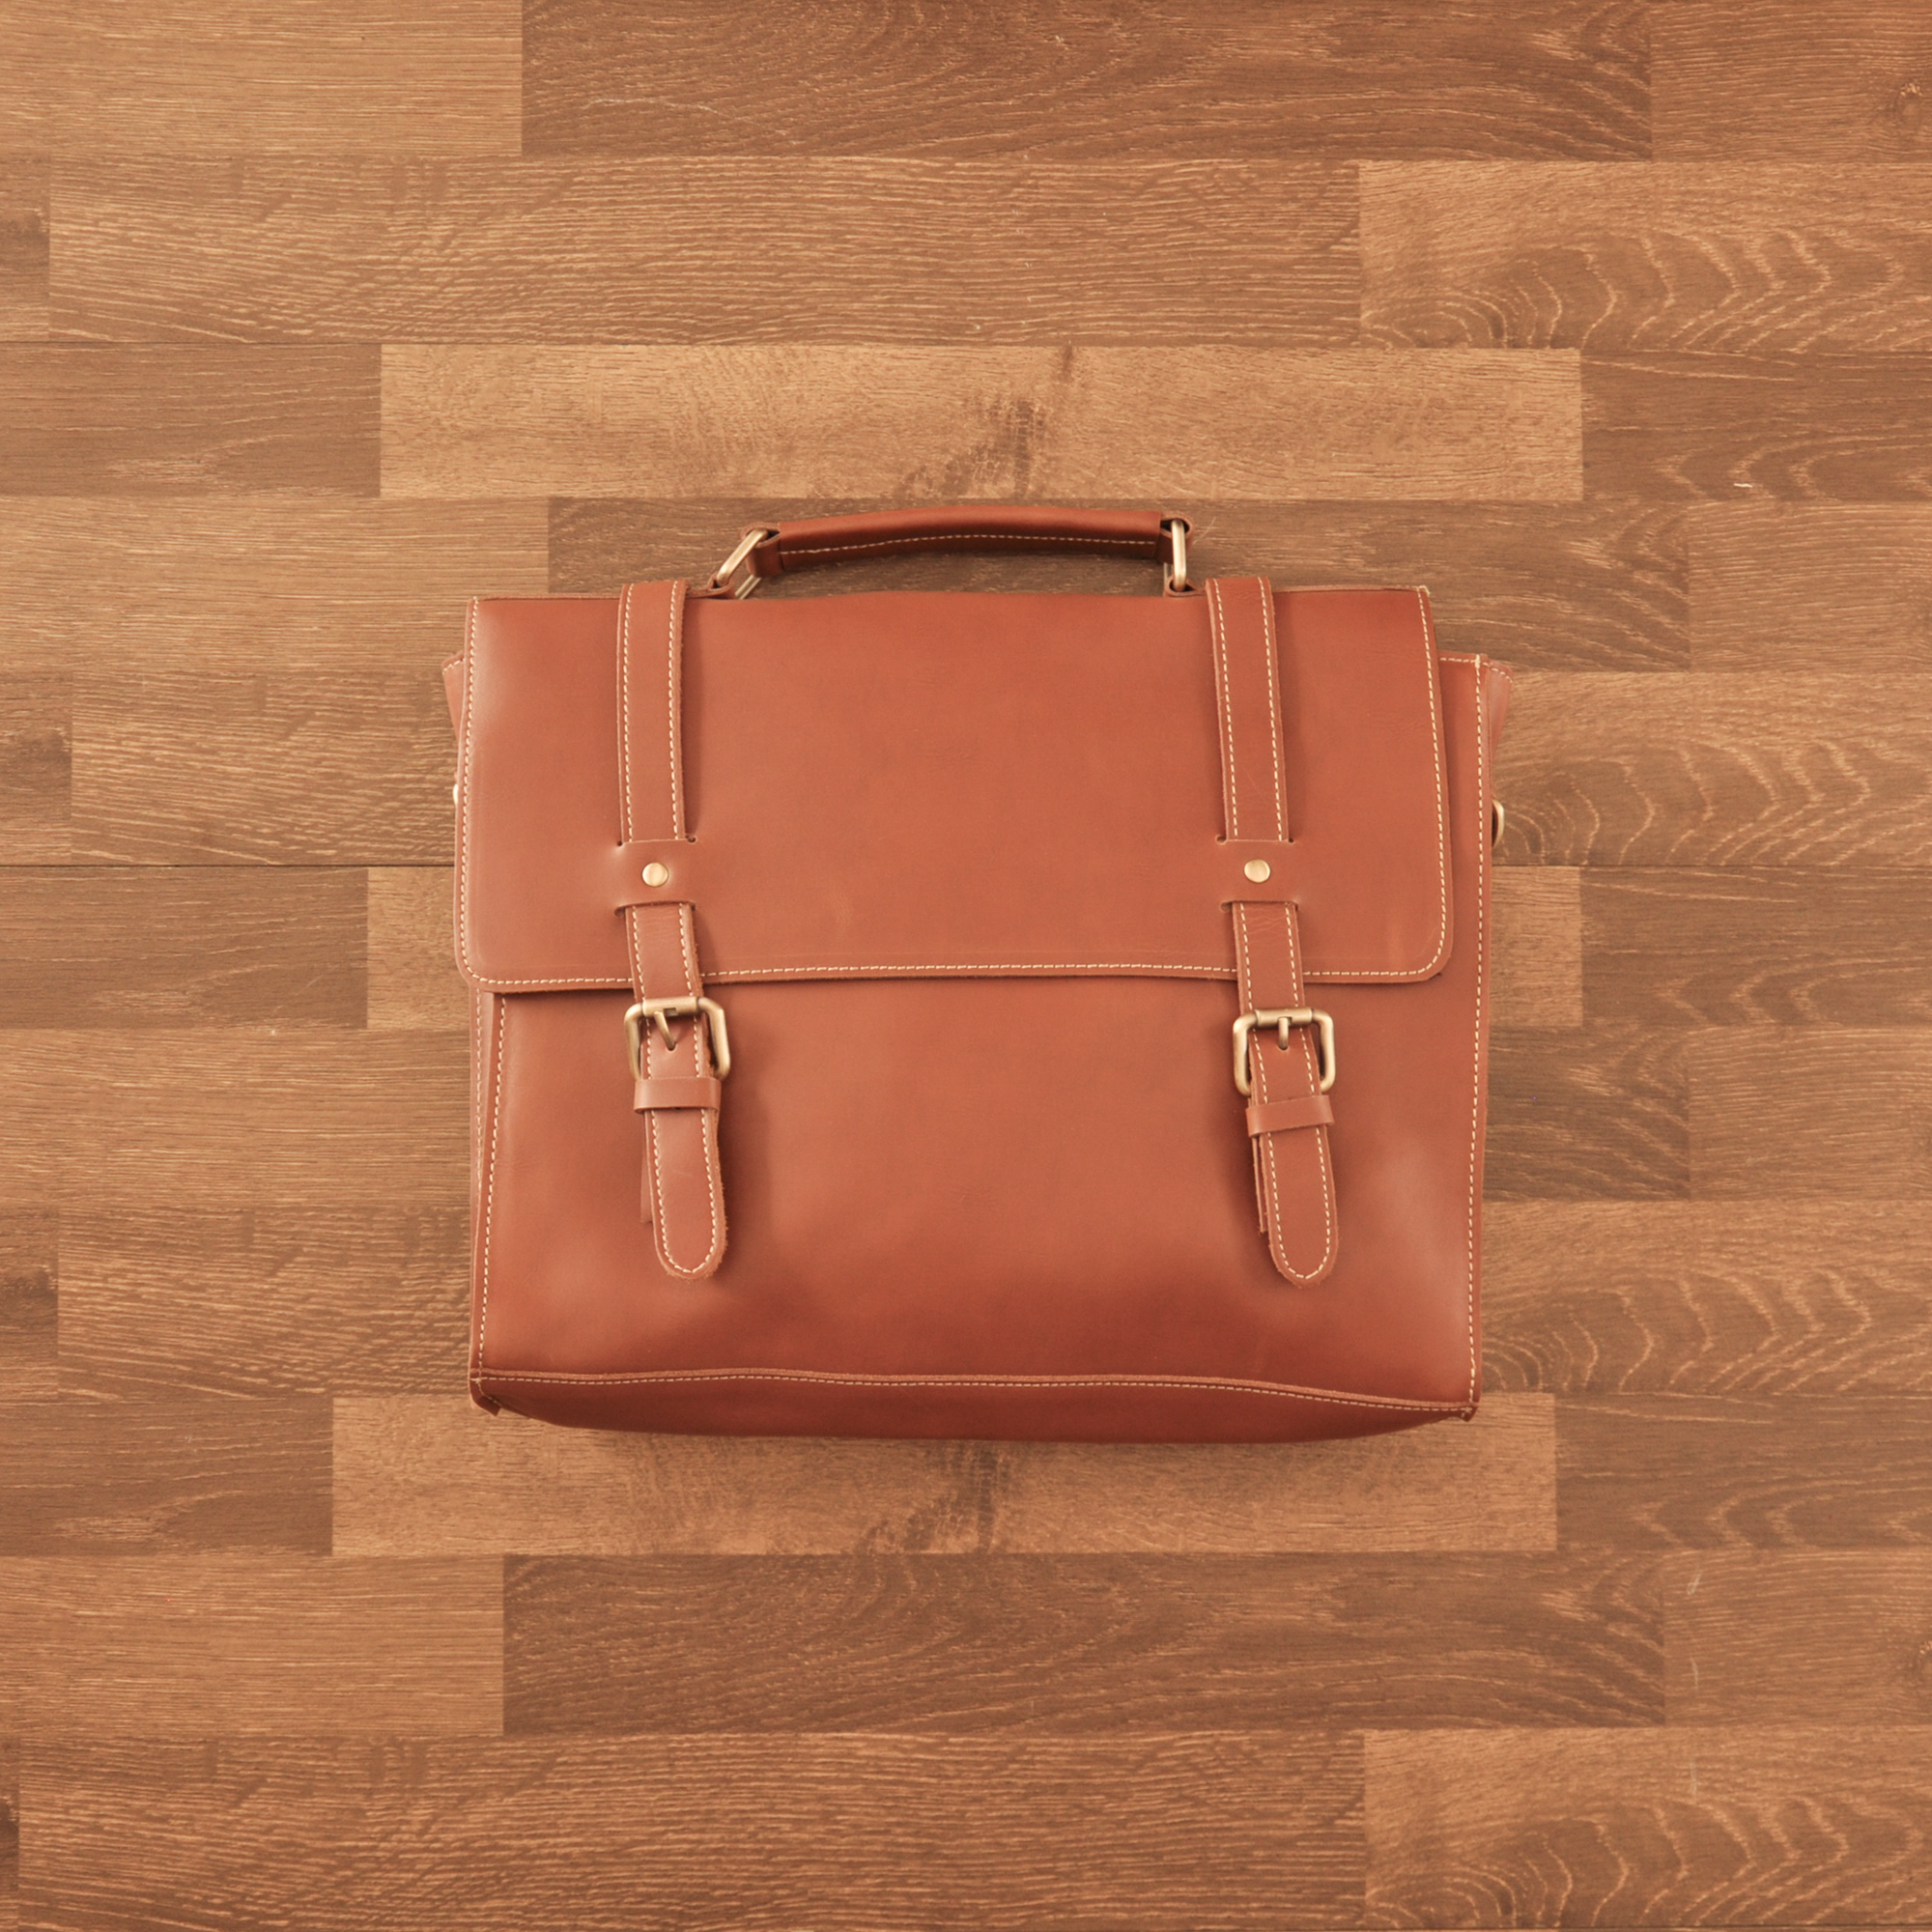 Model 2 - Brown - 13 inch